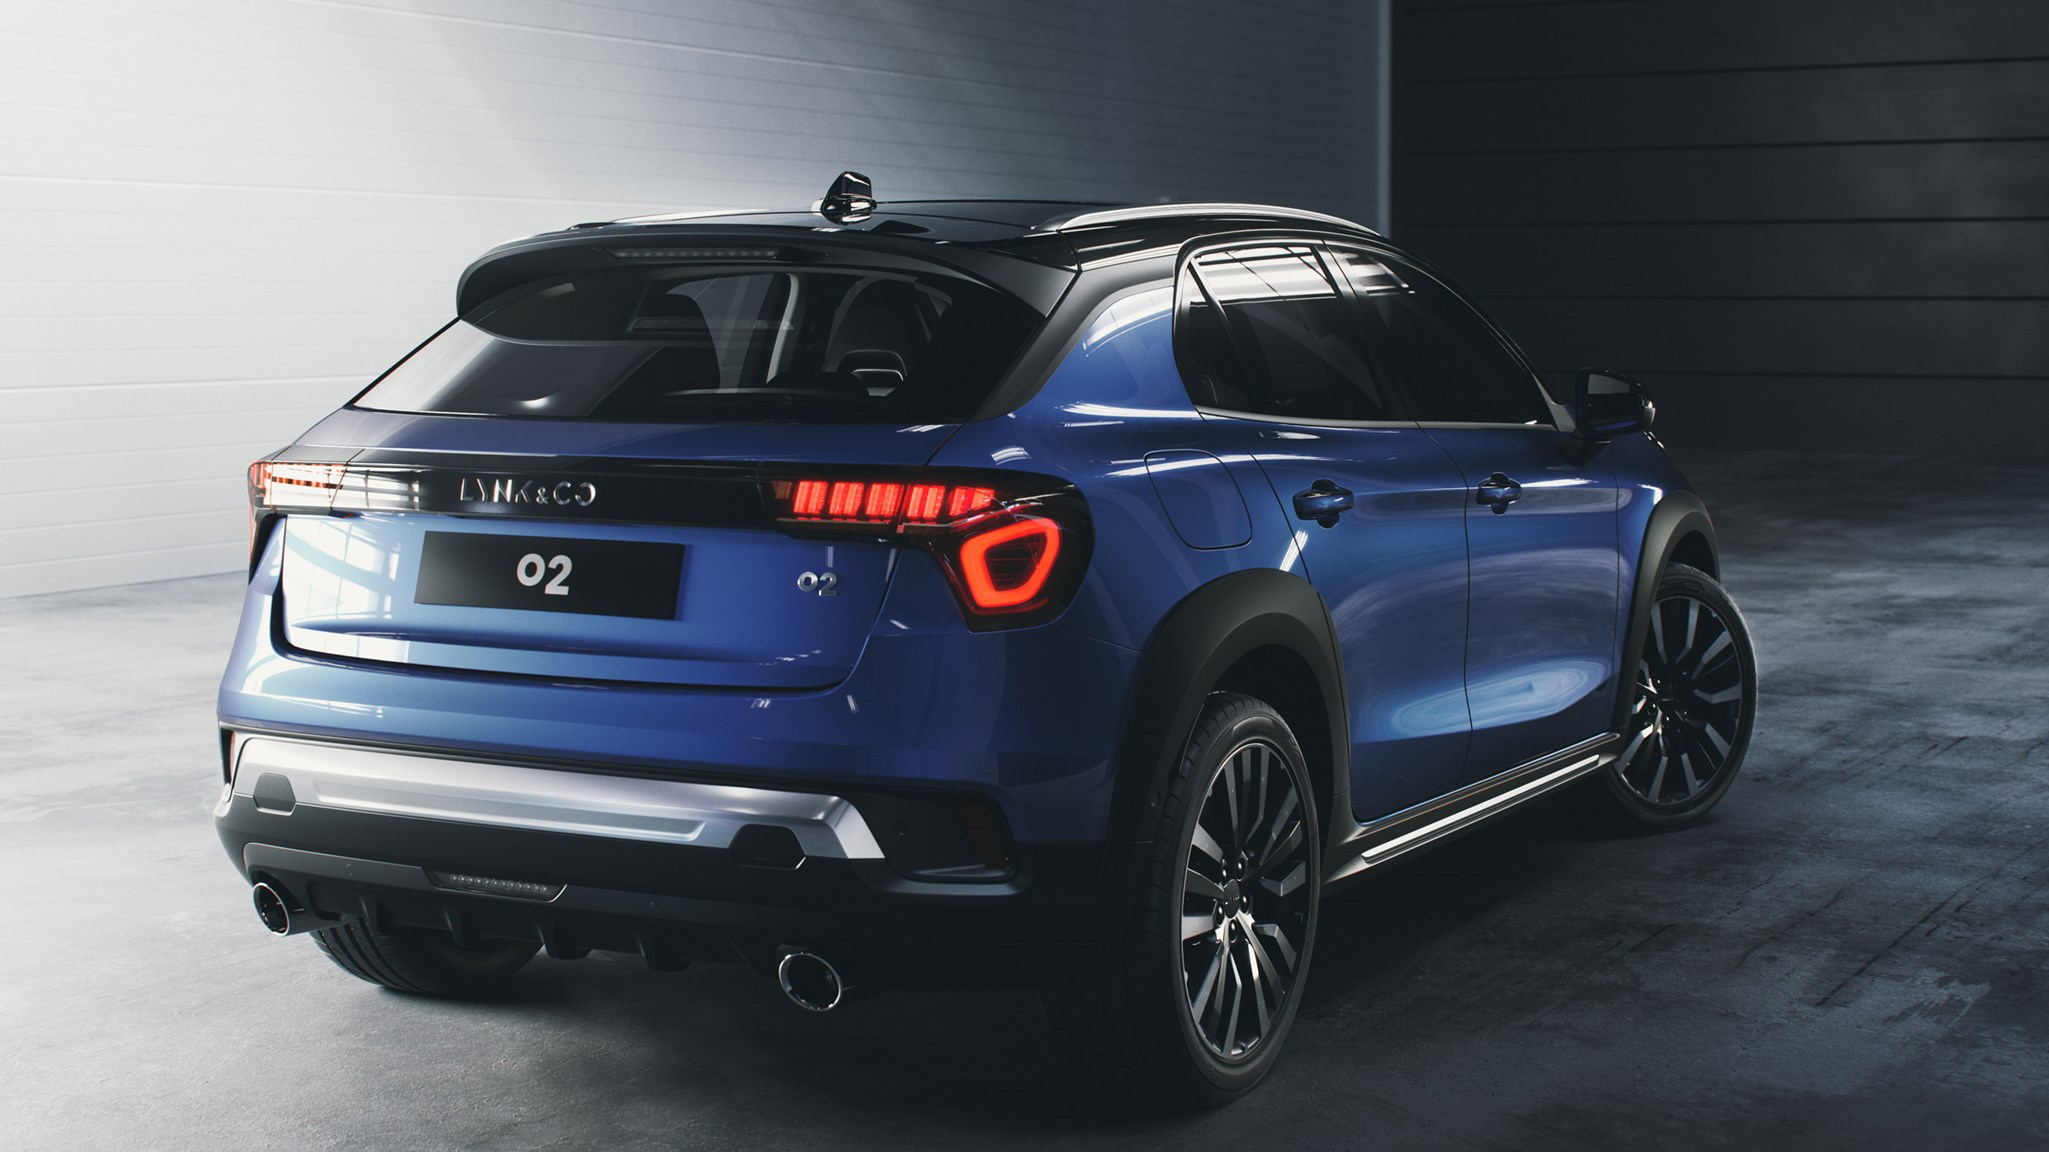 Lynk & Co 02: Geely's other marque reveals new SUV by CAR ...